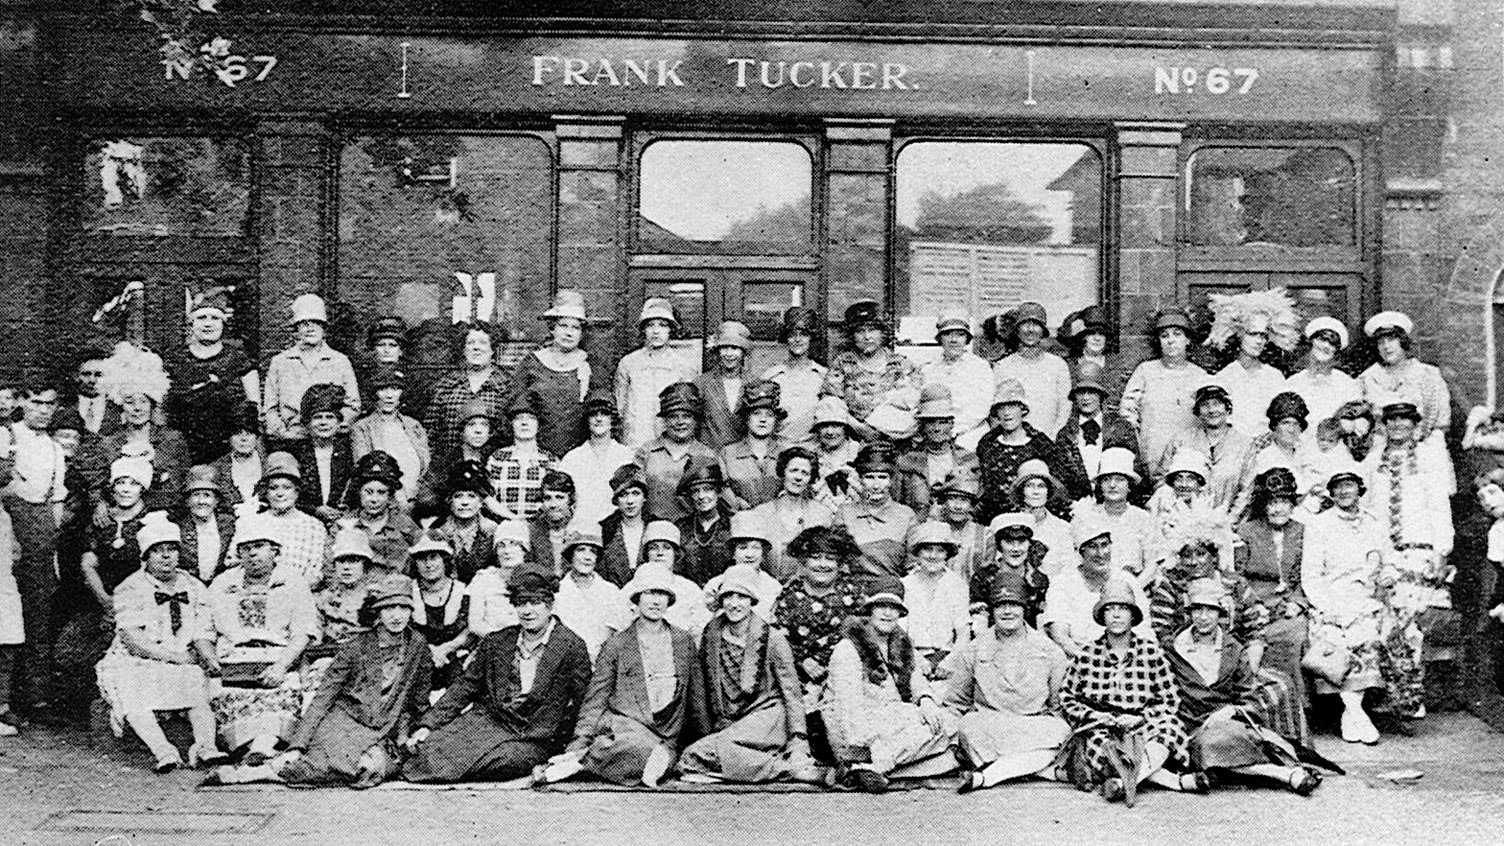 Group photo of women outside Frank Tucker pub